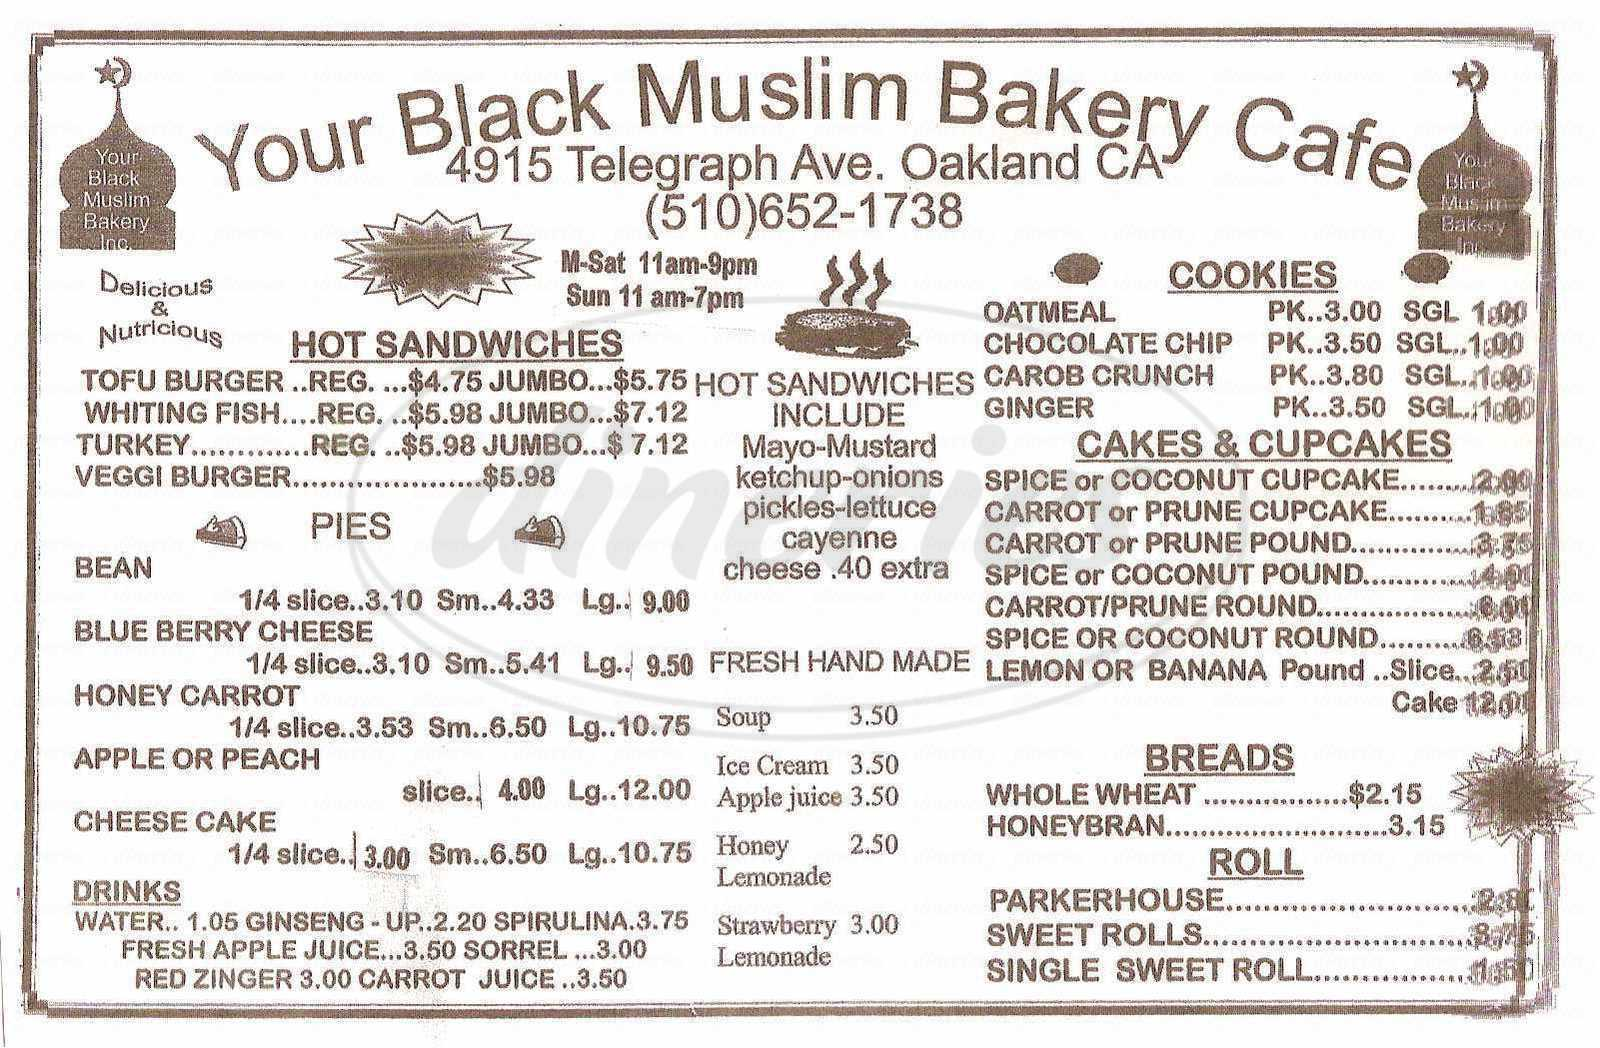 menu for Your Black Muslim Bakery